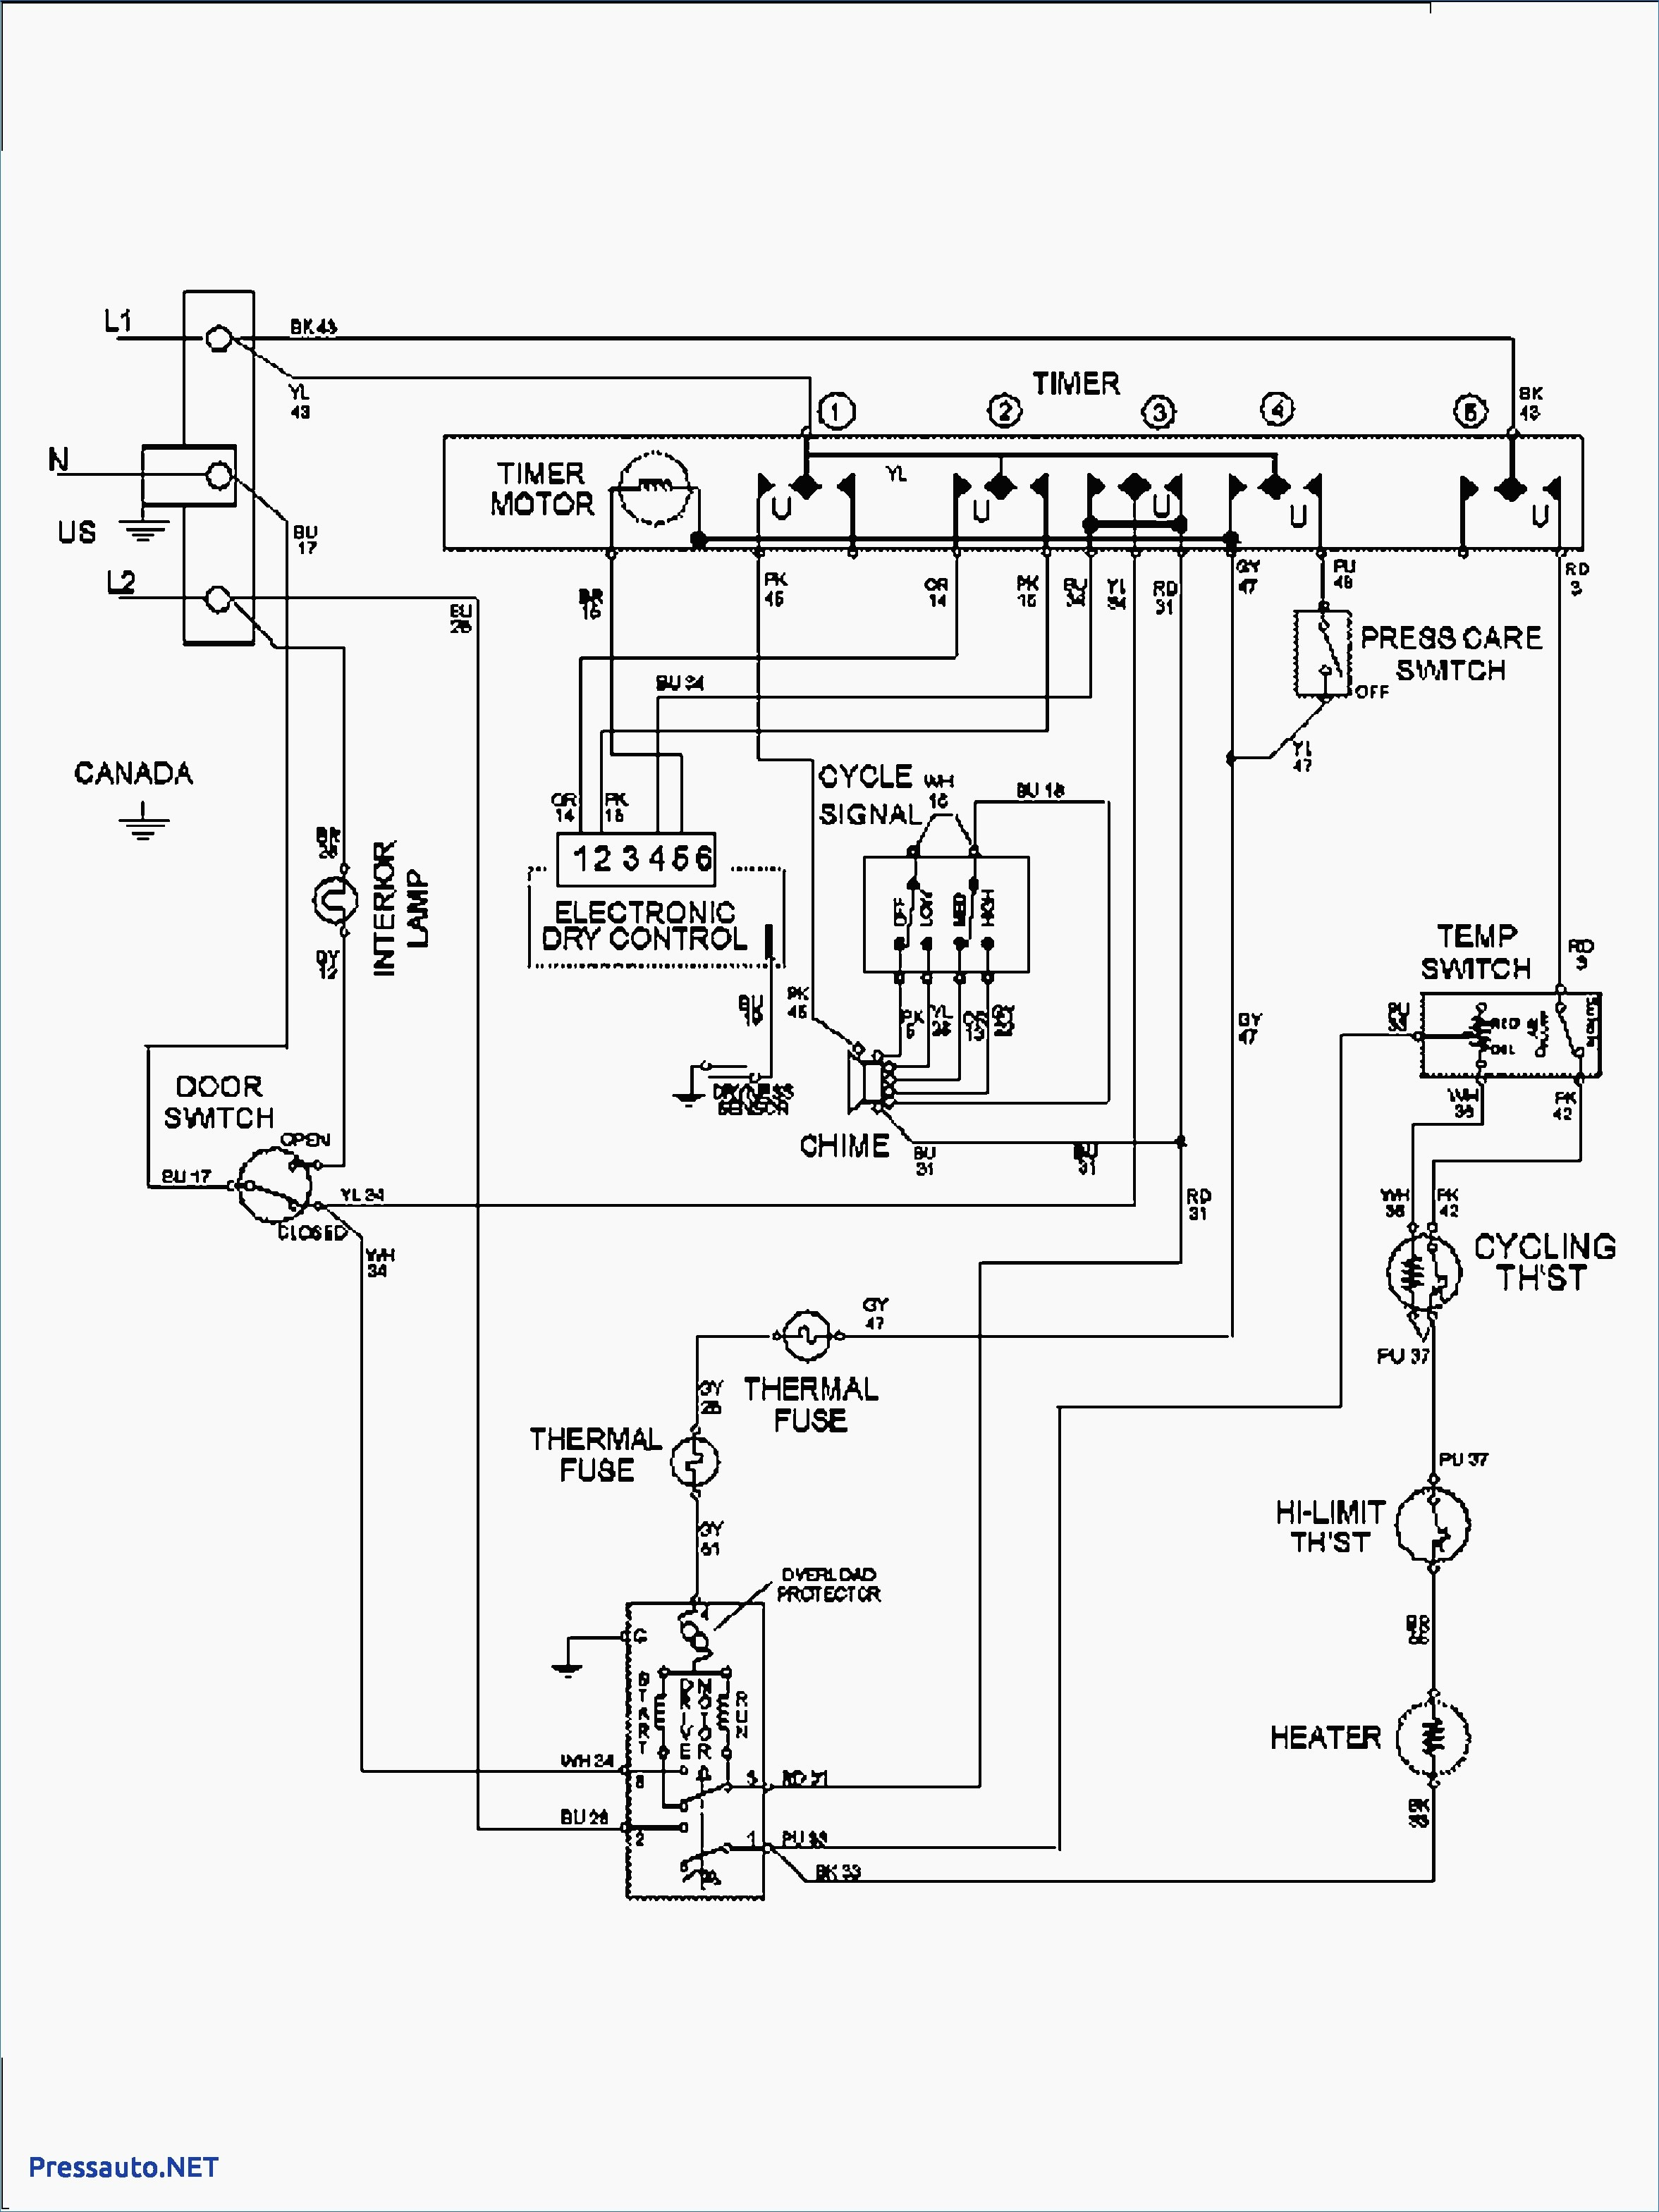 roper electric dryer wiring diagram for a technical diagrams Crosley Dryer Wiring Schematic